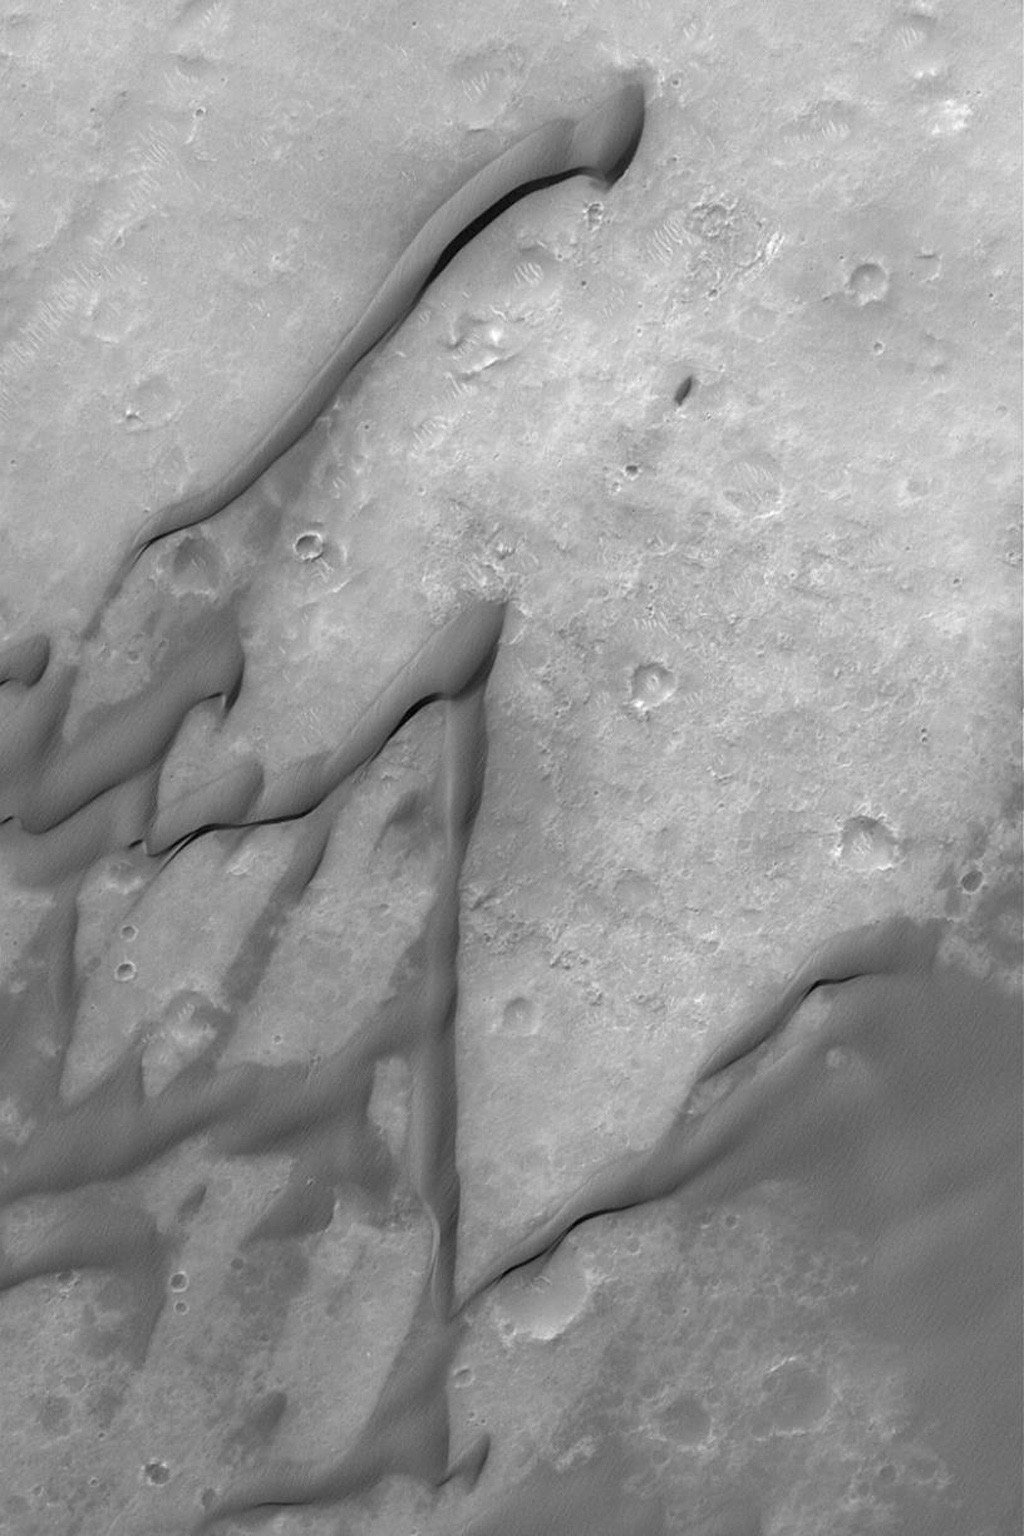 NASA's Mars Global Surveyor shows windblown sand dunes in Herschel Basin, a large impact crater in the Terra Cimmeria region of Mars. The dunes of Herschel have grooved surfaces, indicating that their sands are somewhat cemented.